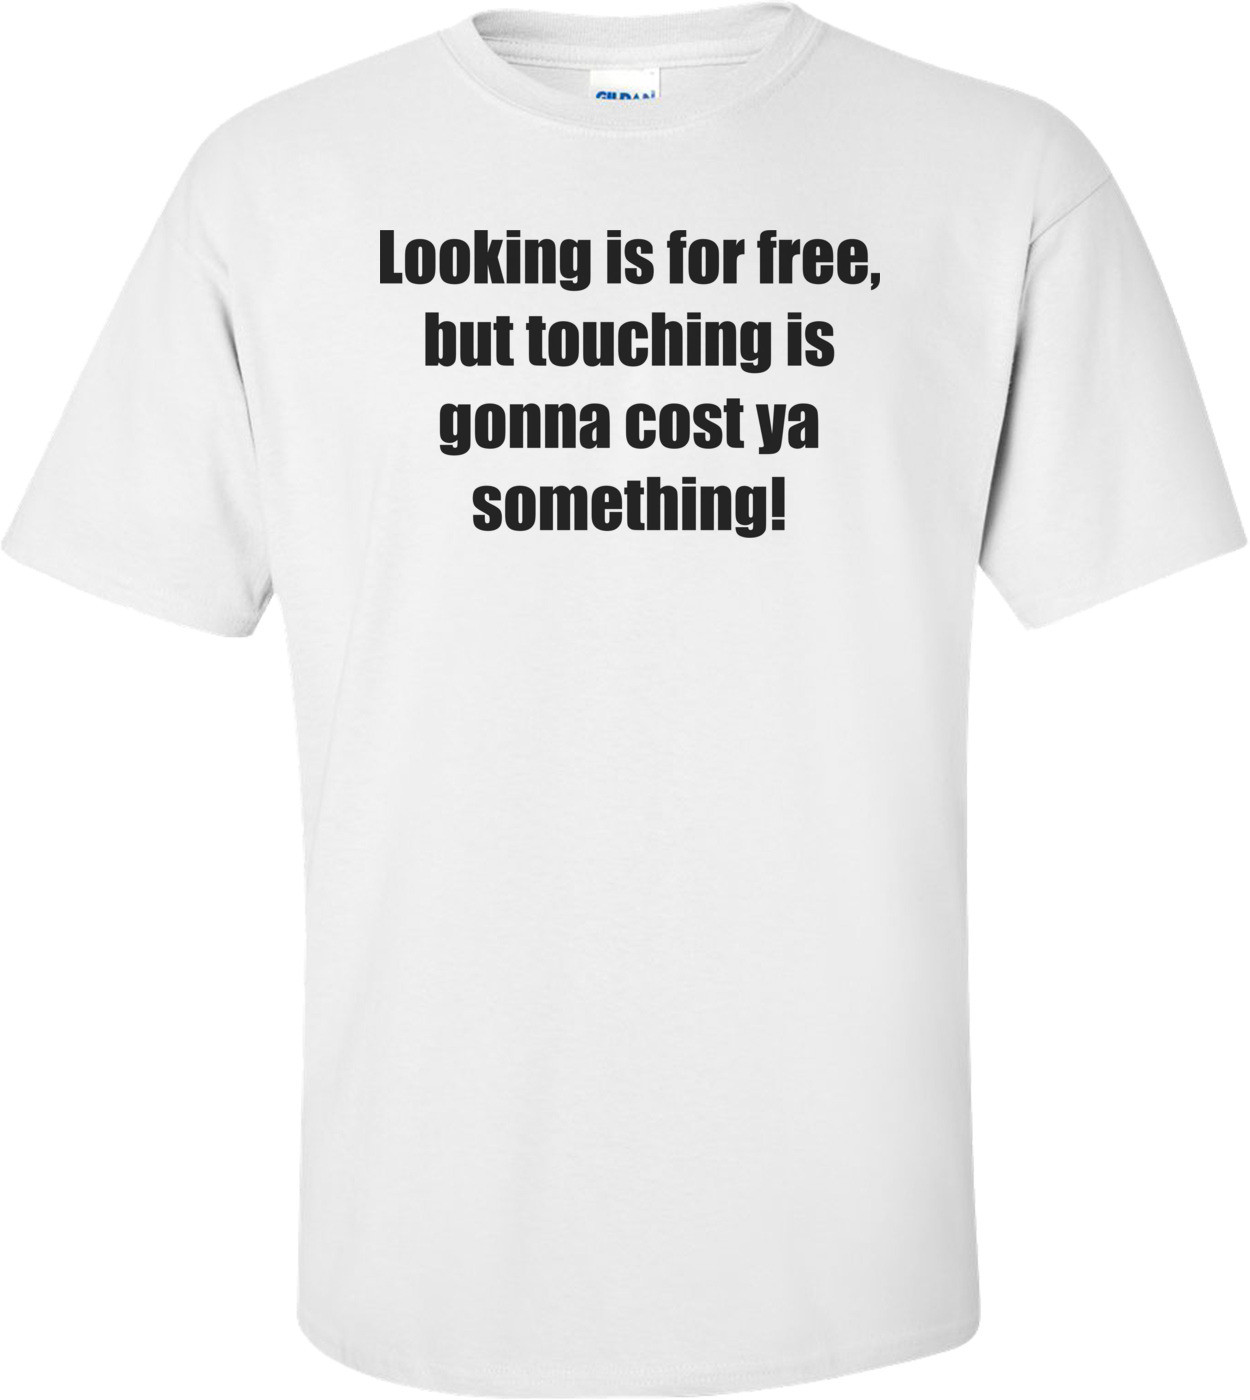 Looking is for free, but touching is gonna cost ya something! Shirt